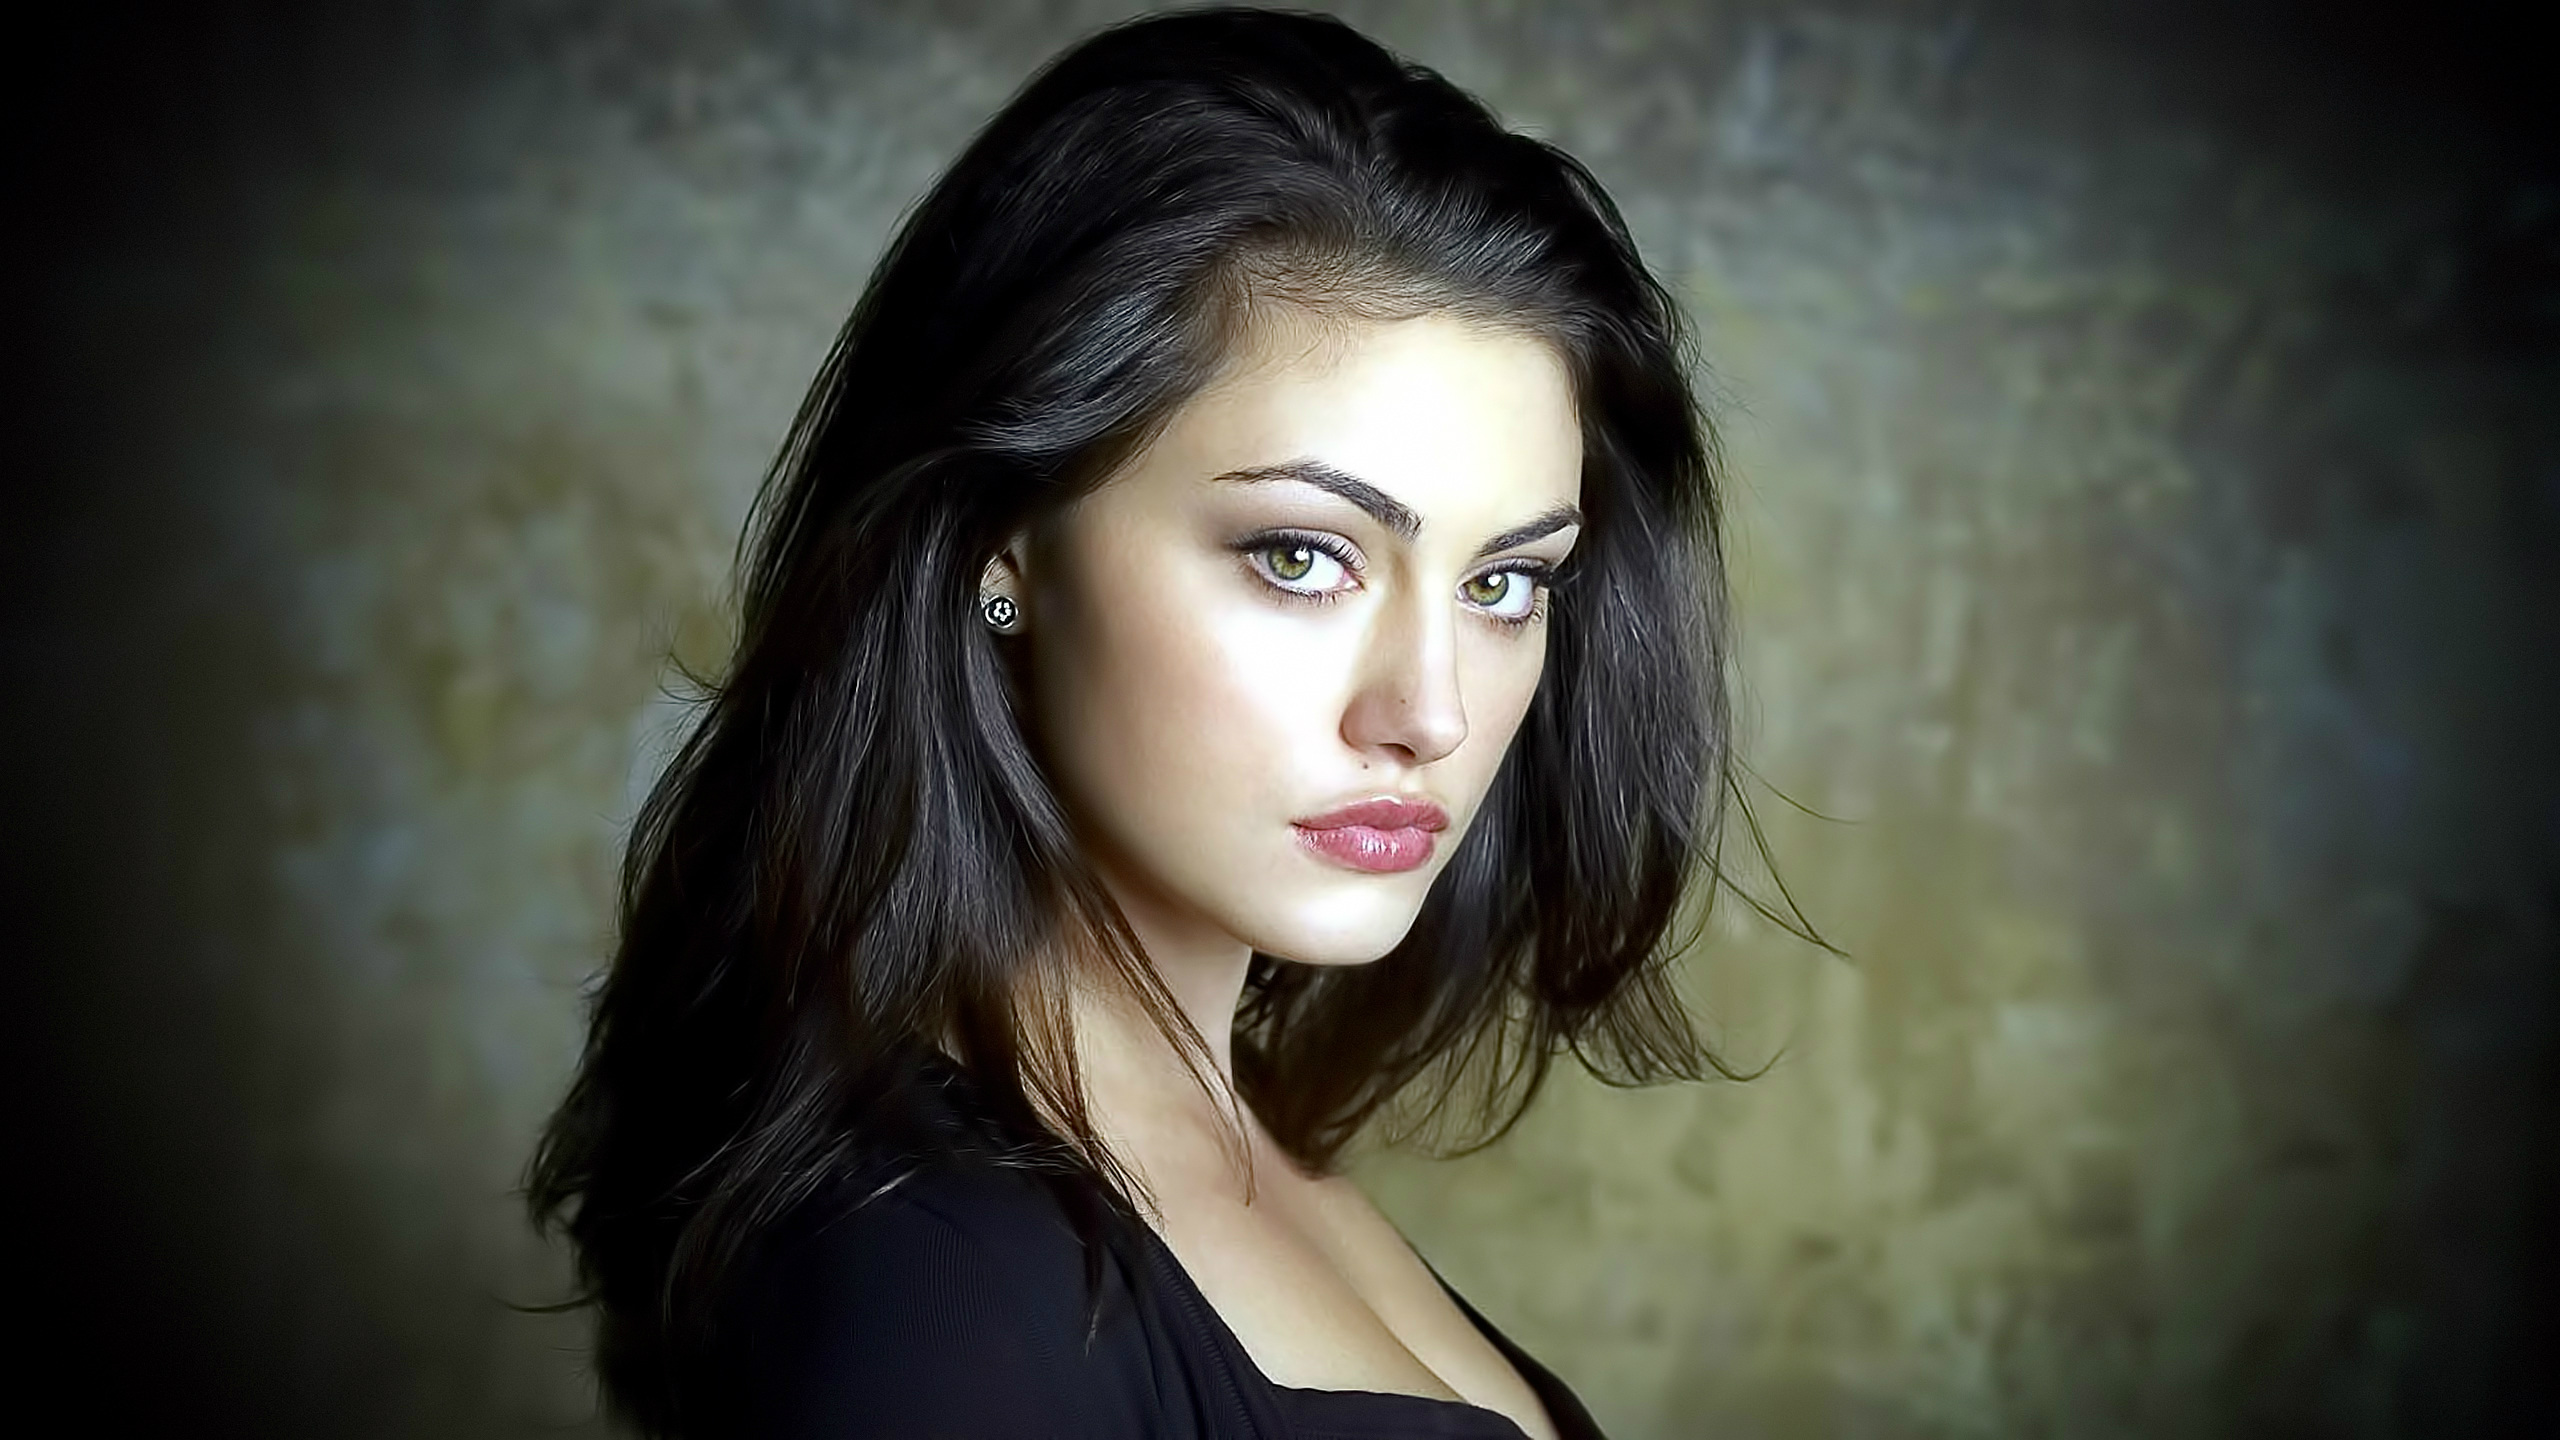 Beautiful Girl Hd Wallpapers 1080p  Wallpapers, Backgrounds, Images